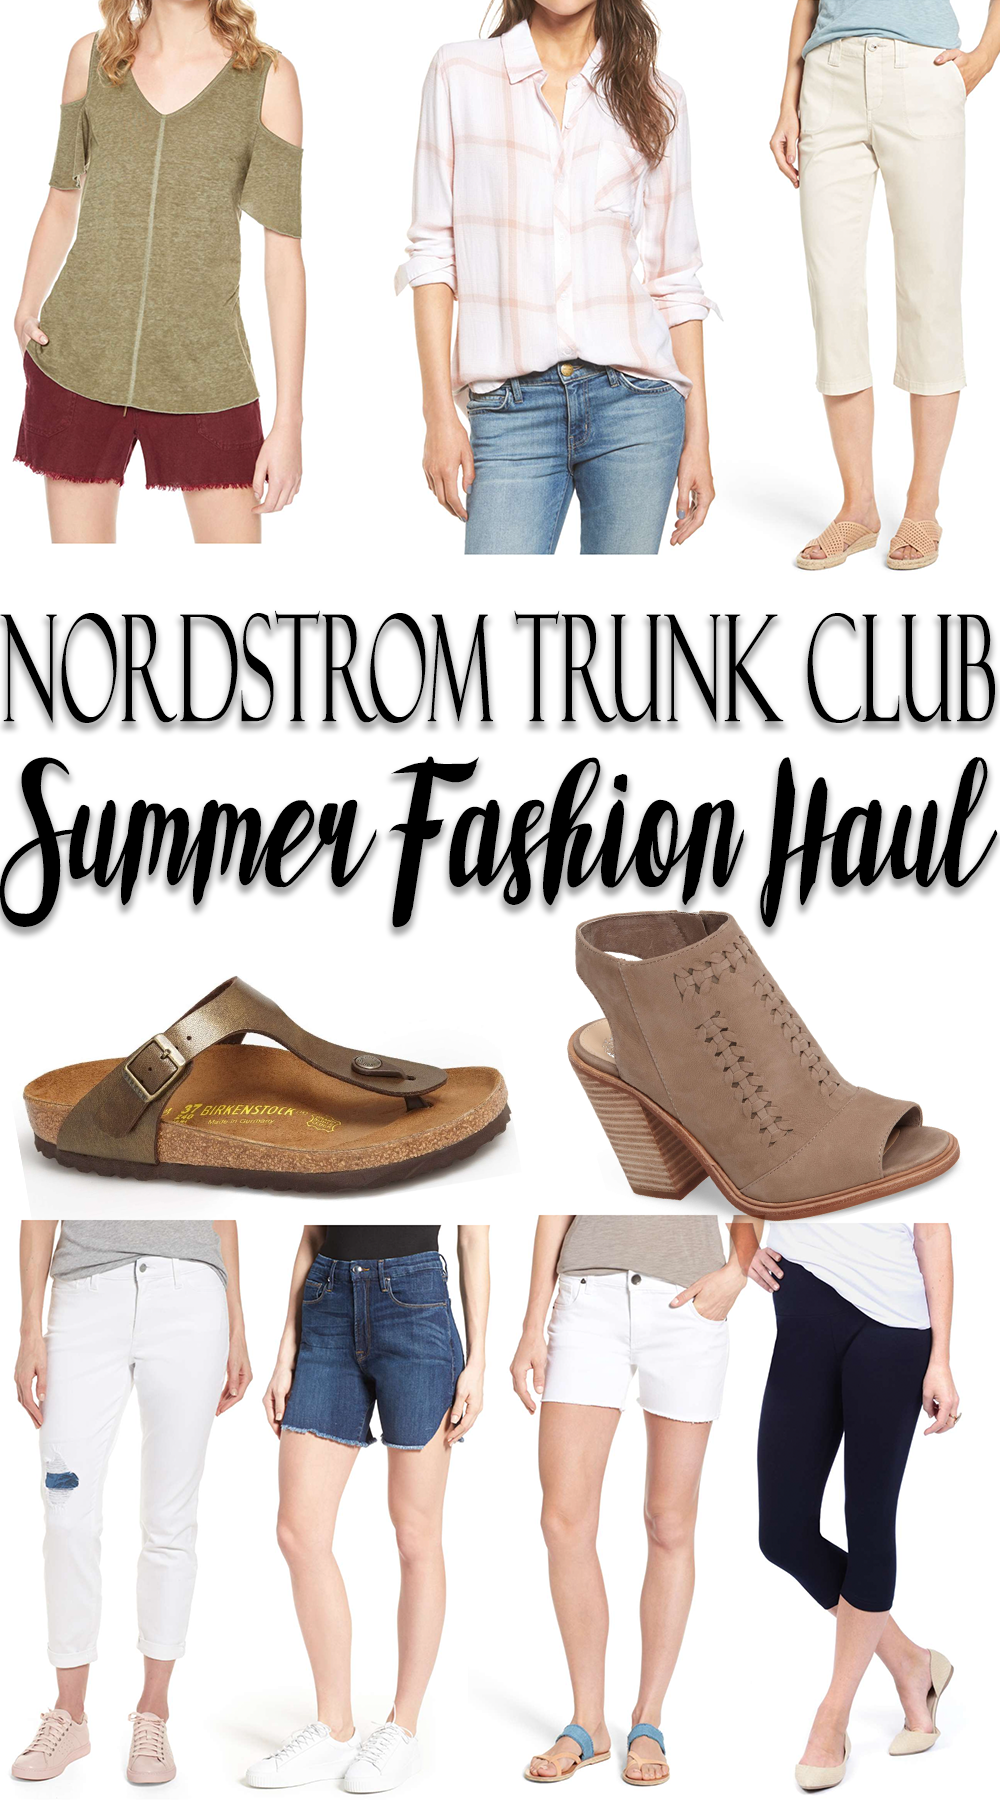 d6ef279401c Trunk Club Summer Fashion Haul from Nordstrom